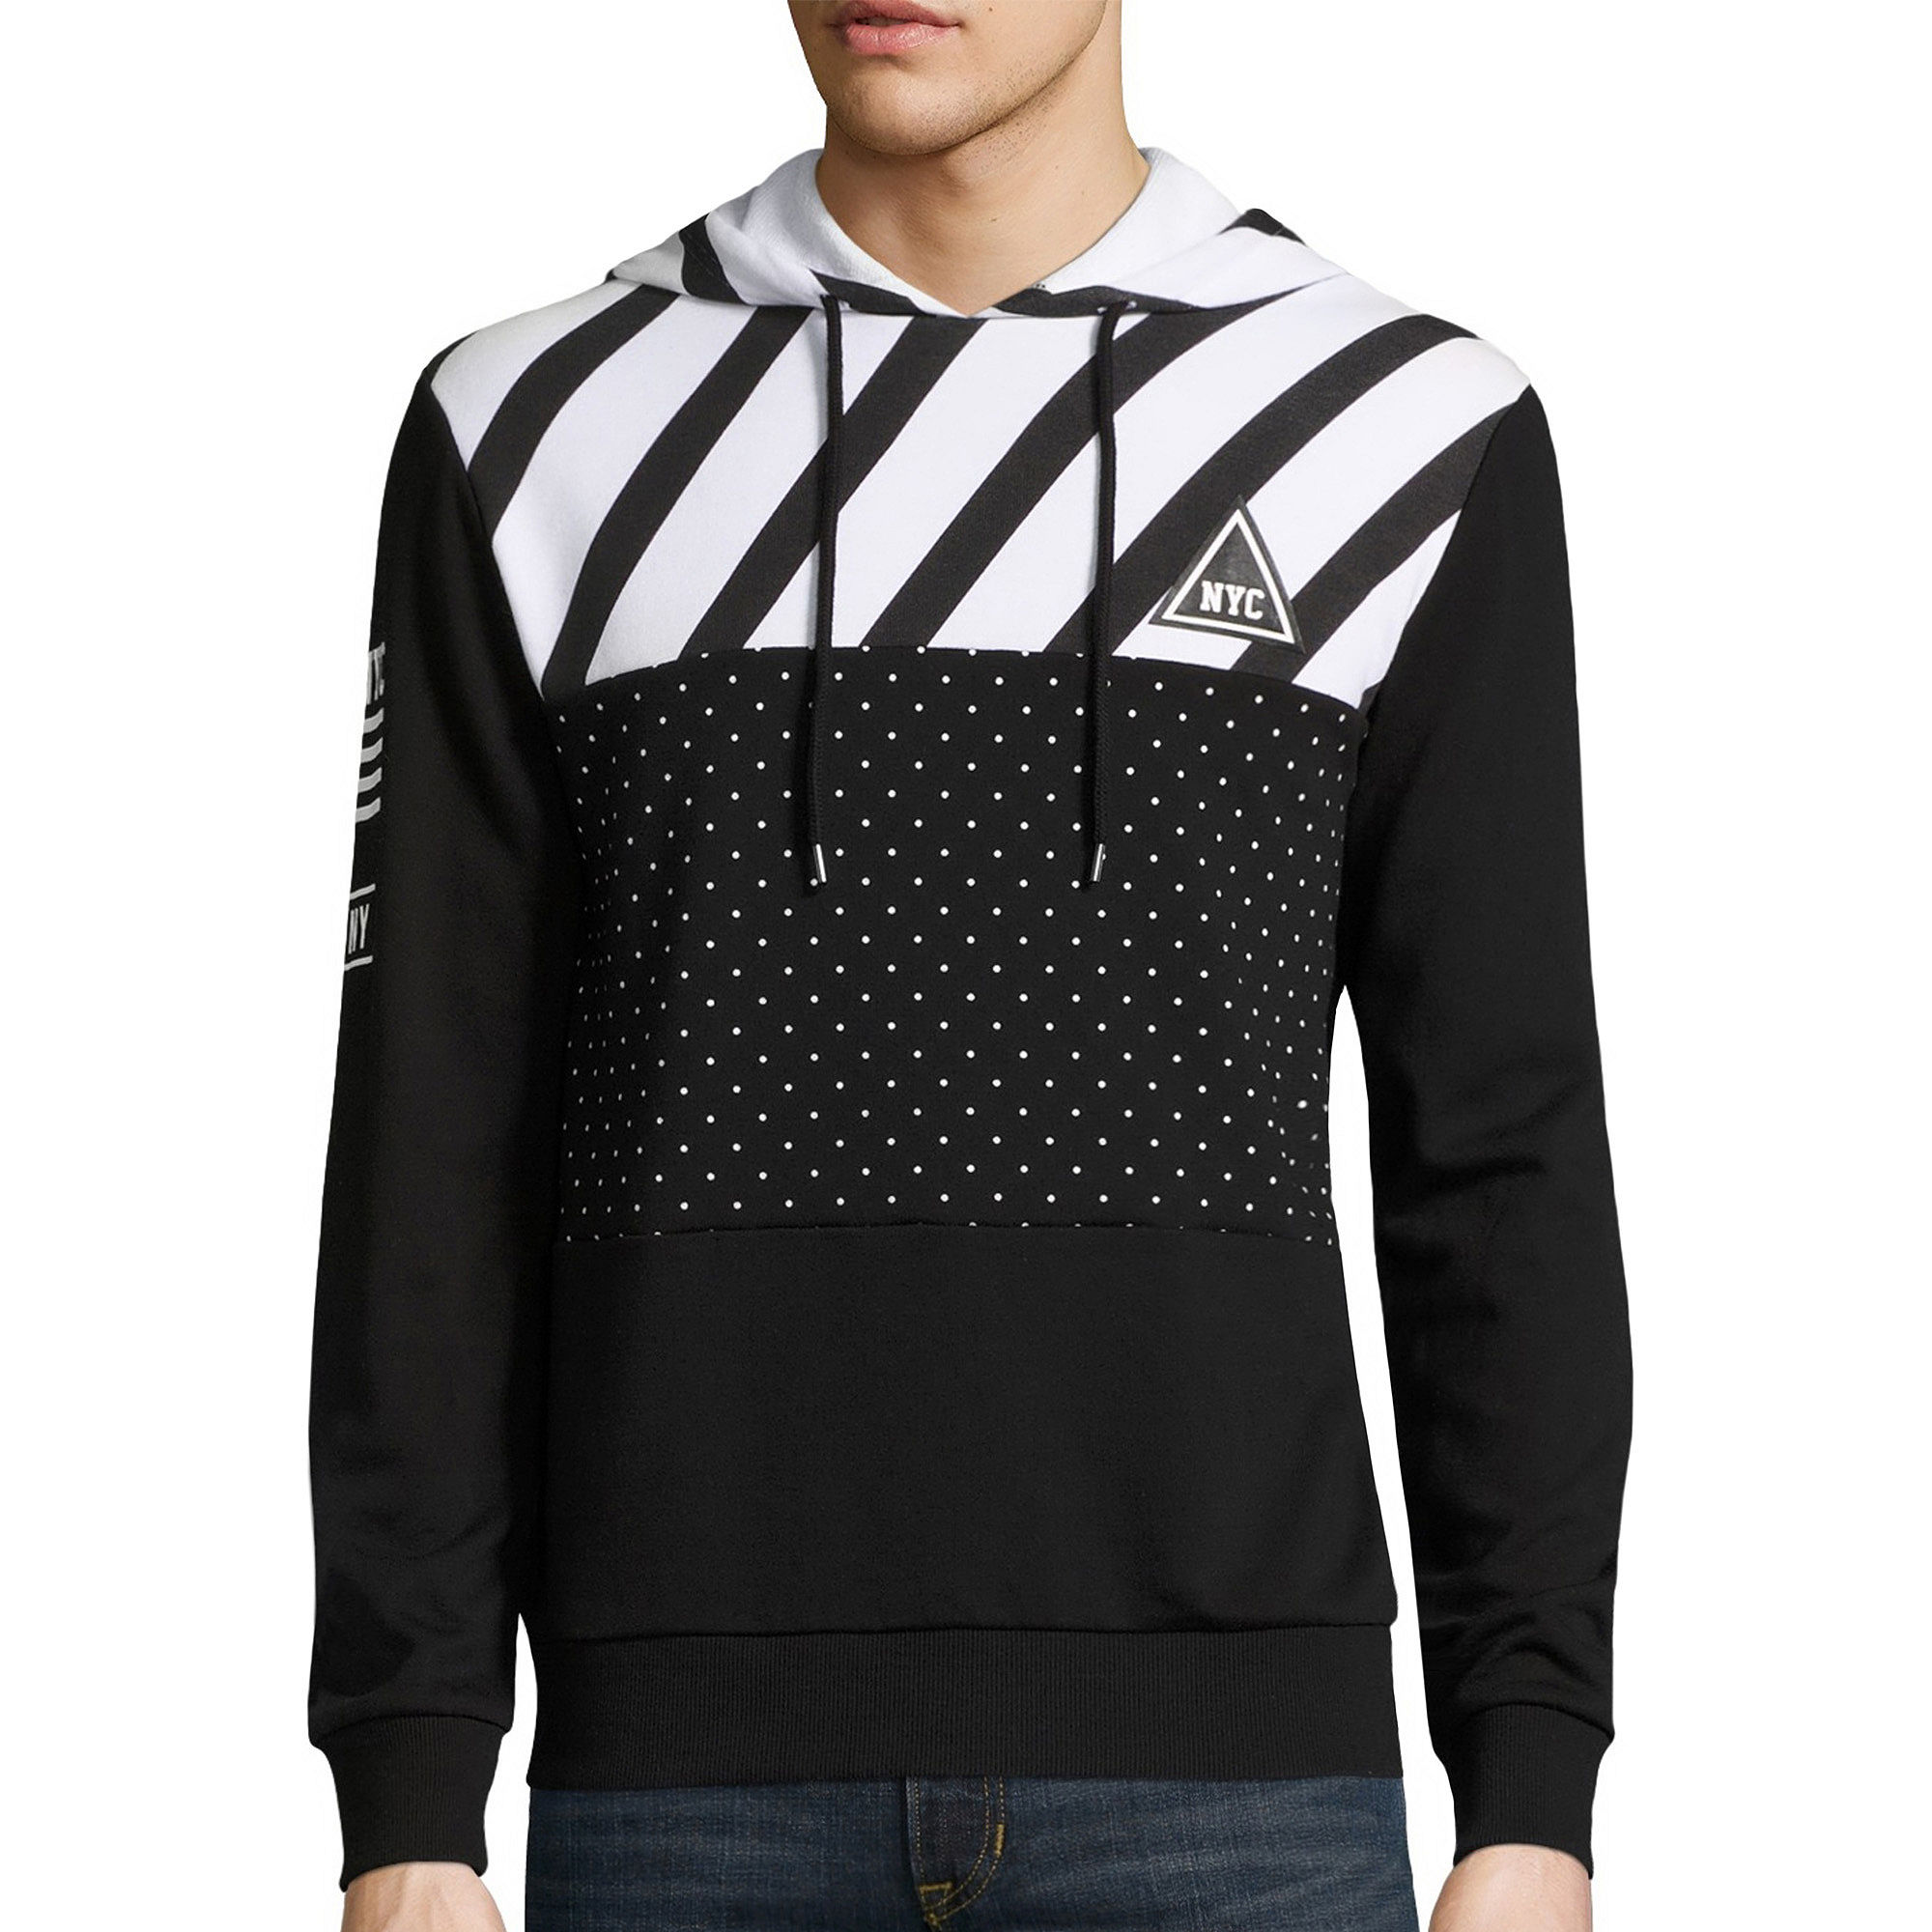 Urban Nation Long Sleeve French Terry Hoodie | Top, Sweatshirt and Clothing